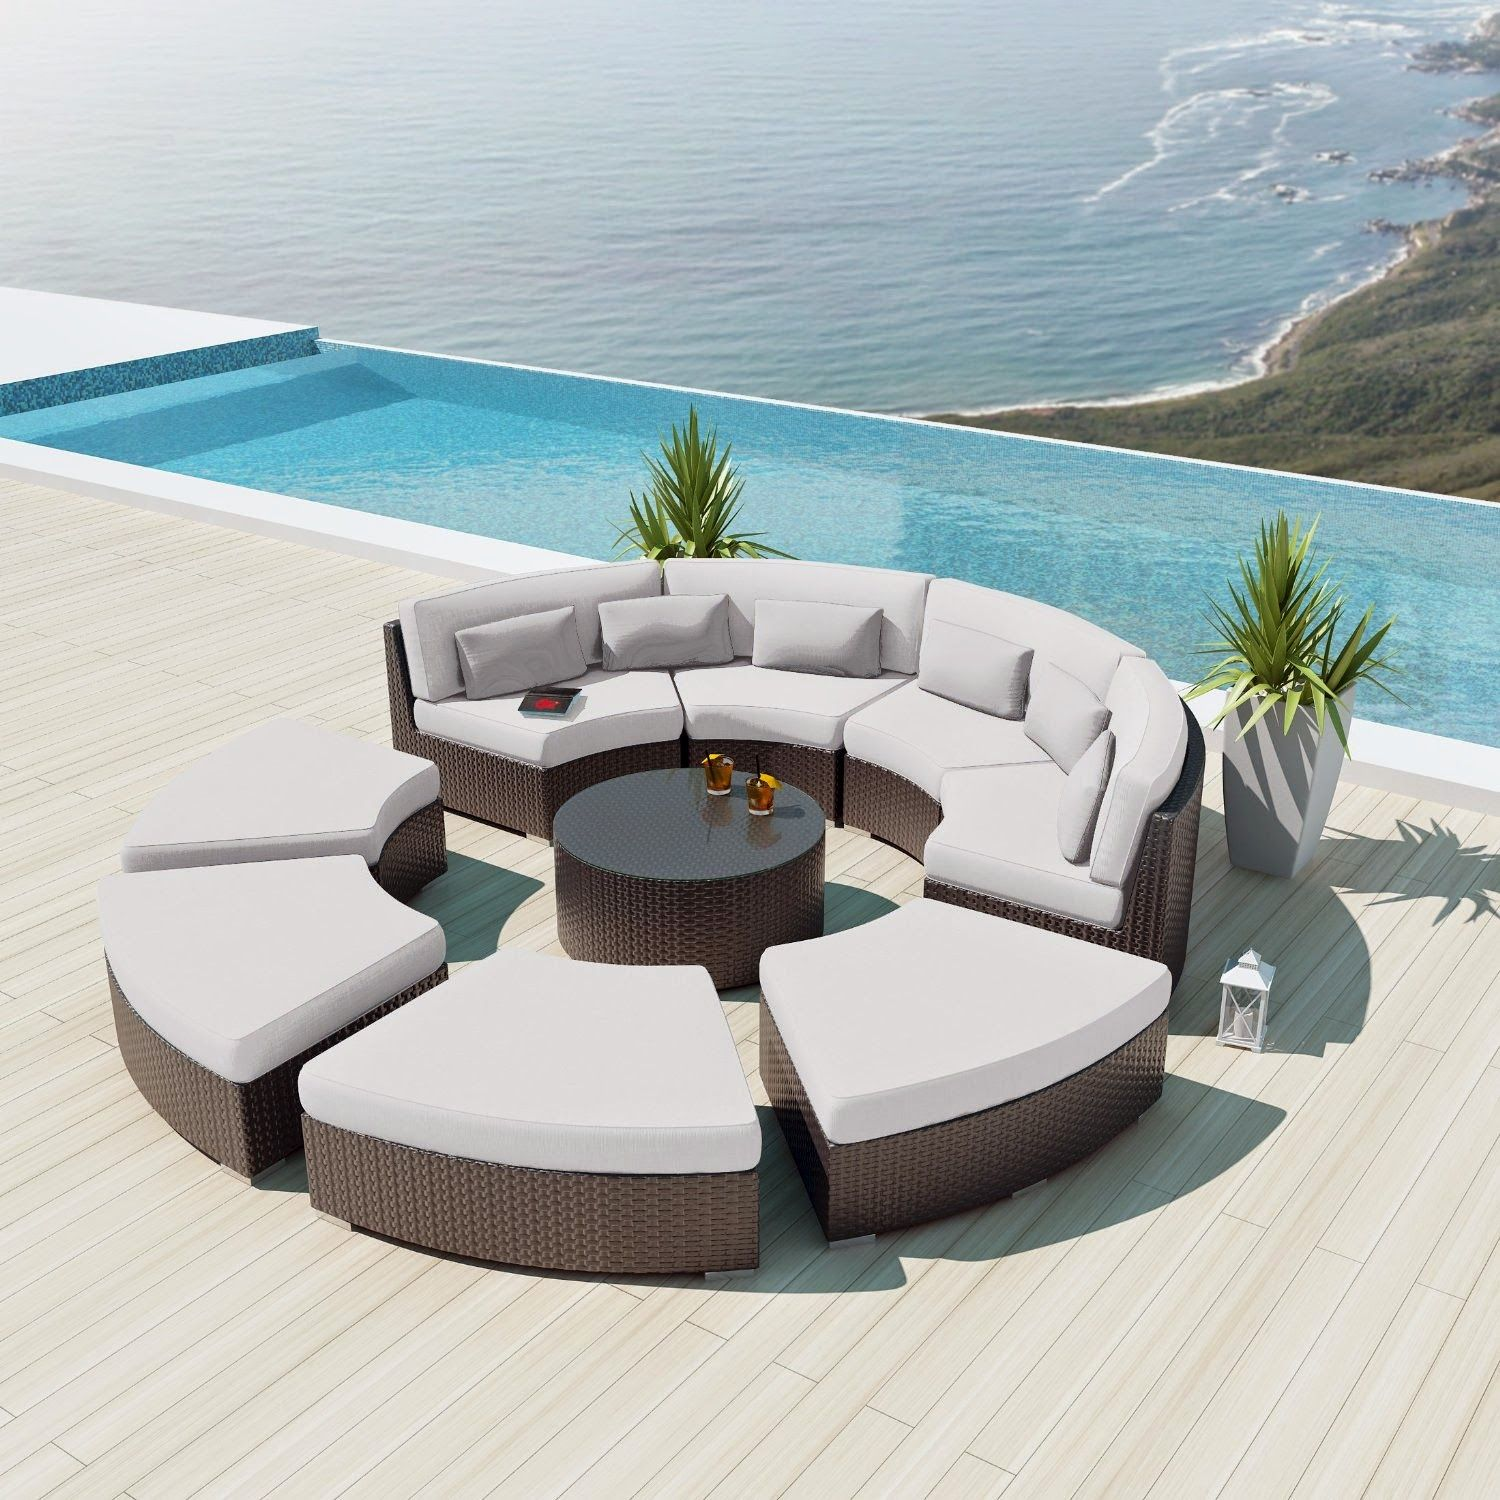 Gallery Of Curved Outdoor Sofa Sectional Patio Furniture Patio Sofa